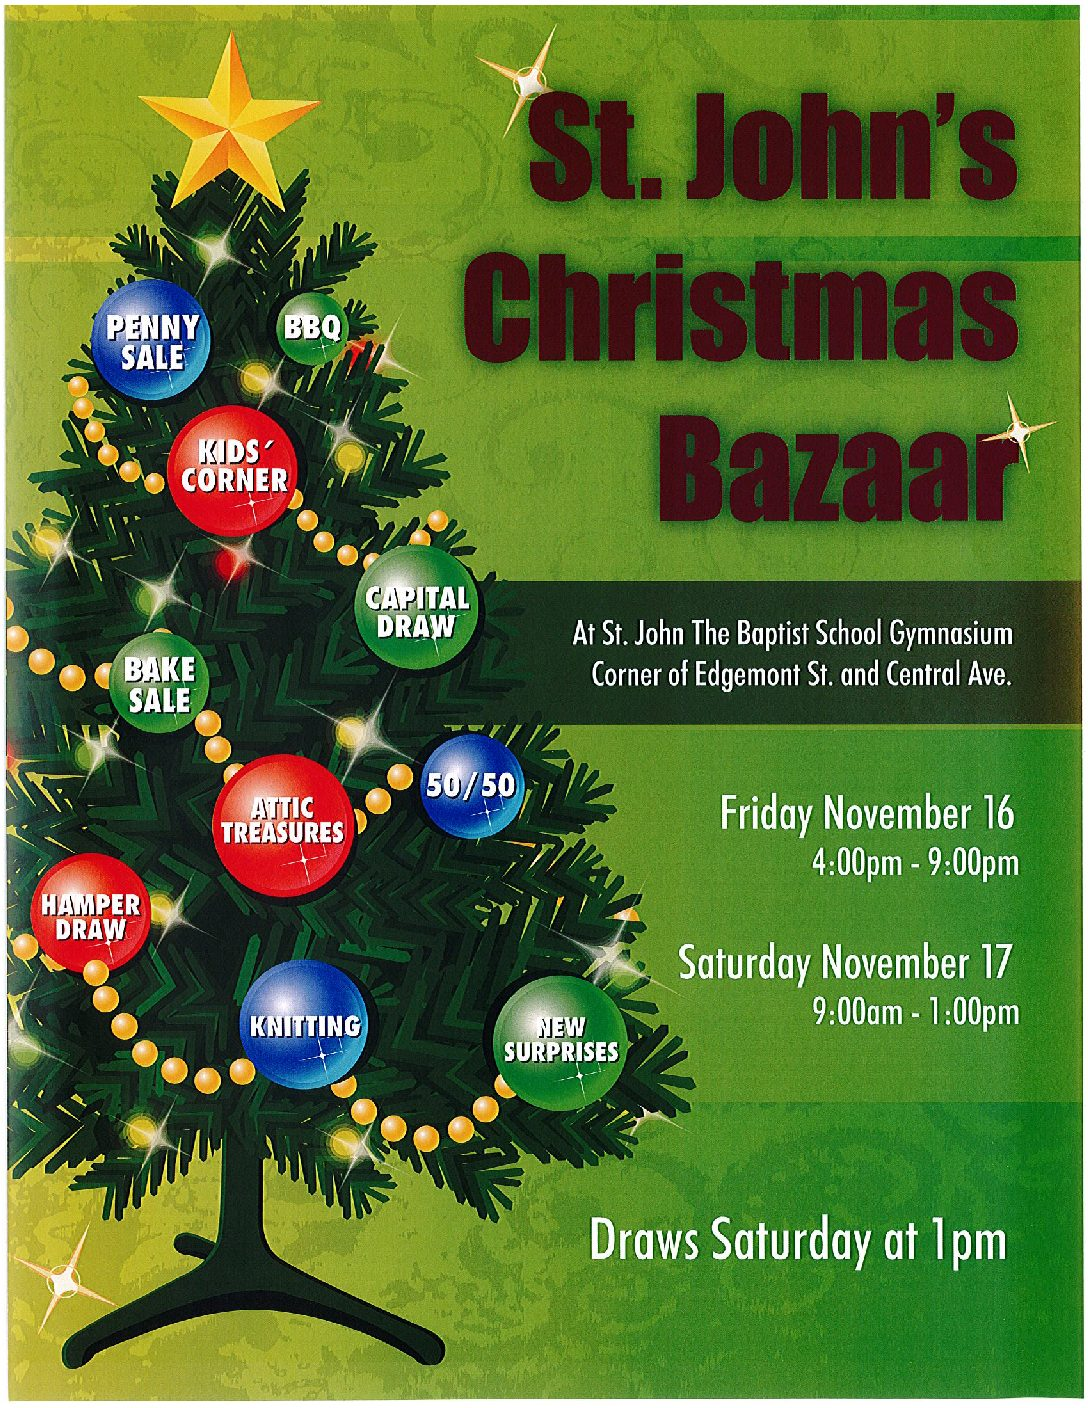 Annual Parish Bazaar